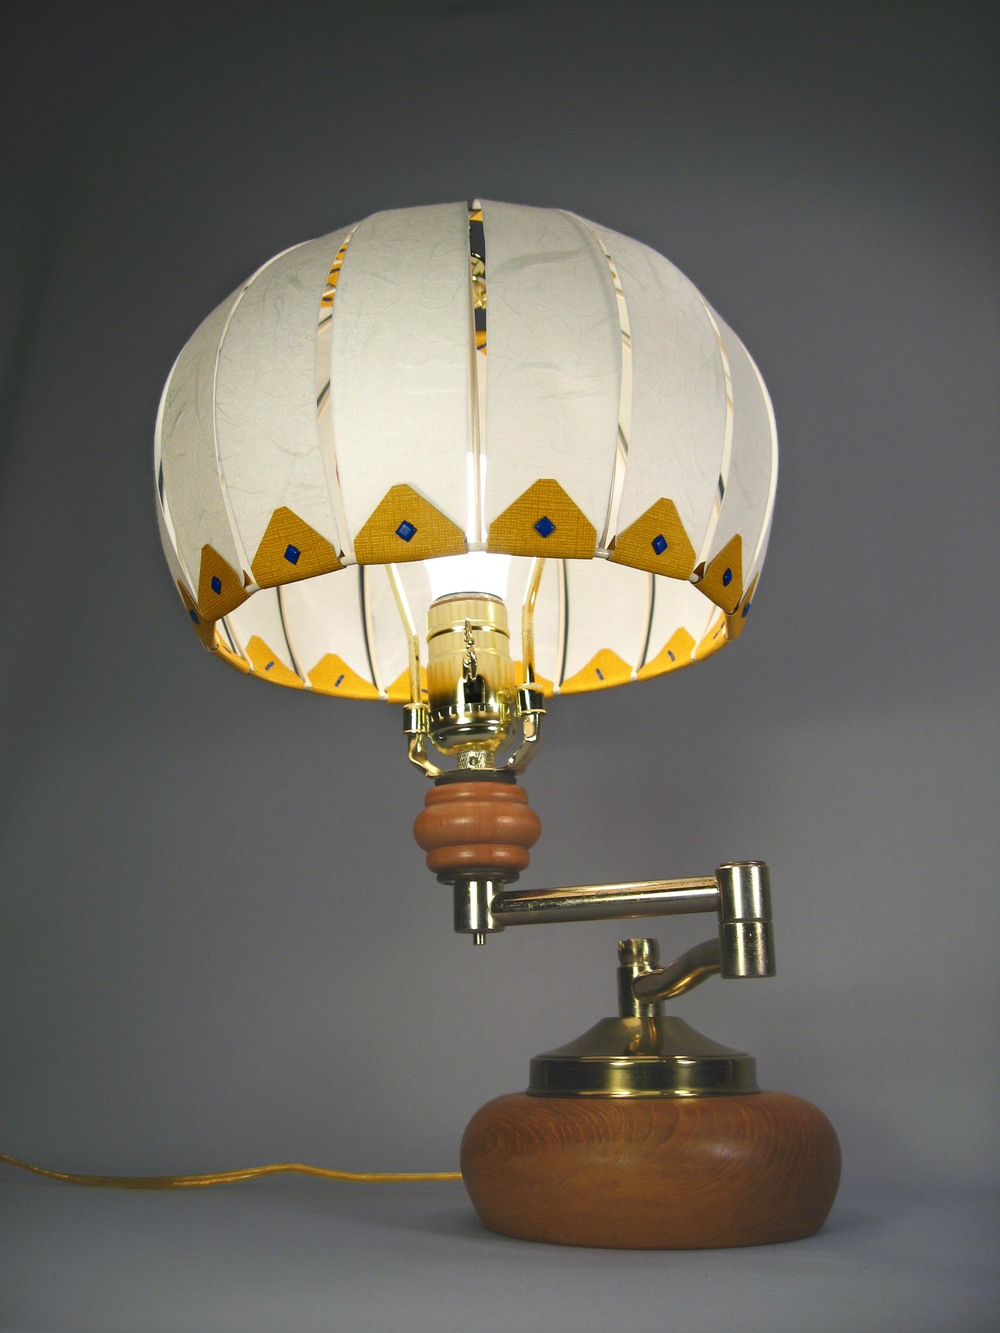 balloon_lamp copy.jpg